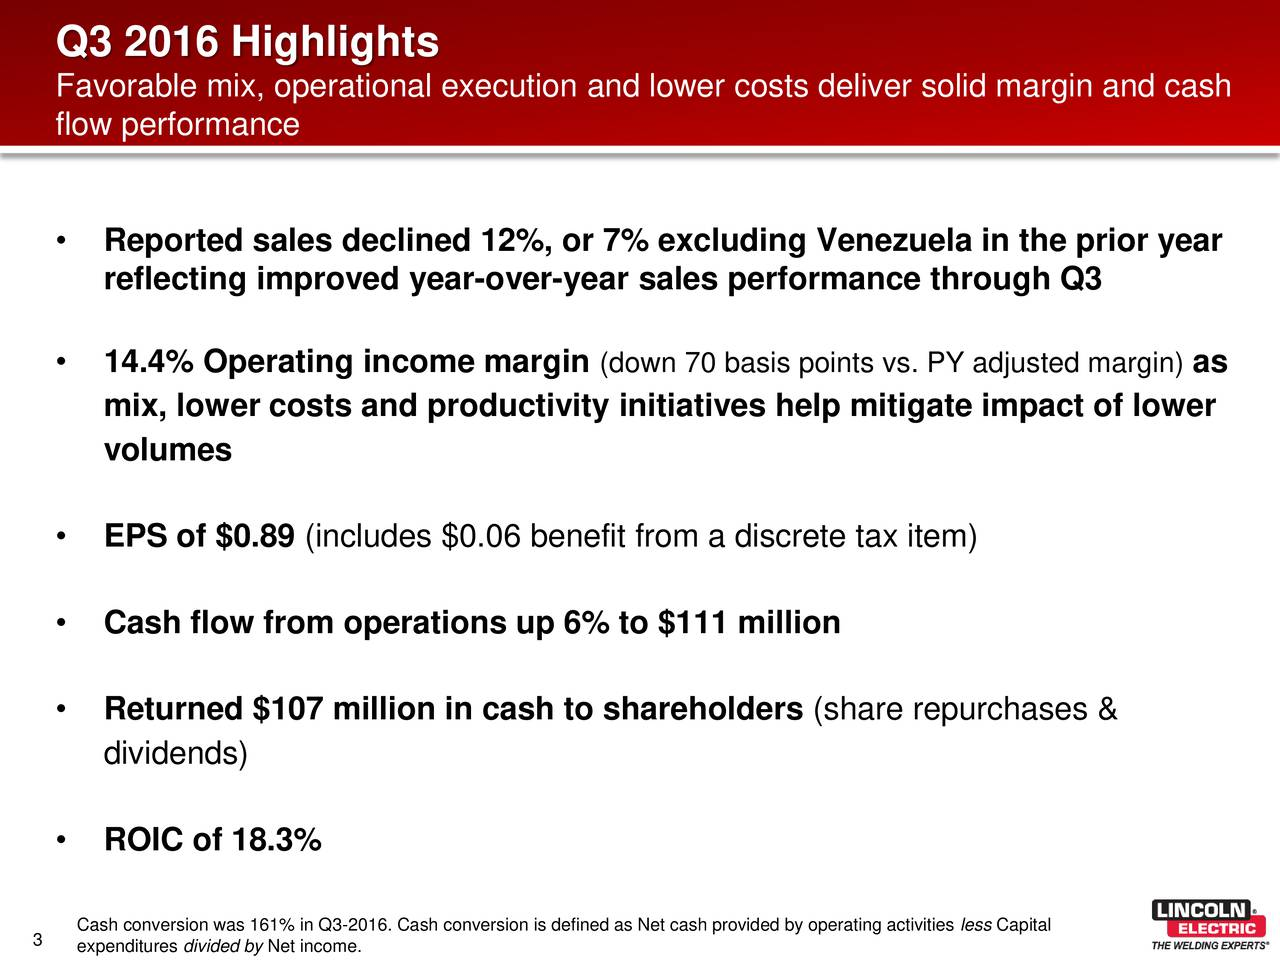 Favorable mix, operational execution and lower costs deliver solid margin and cash flow performance Reported sales declined 12%, or 7% excluding Venezuela in the prior year reflecting improved year-over-year sales performance through Q3 14.4% Operating income margin (down 70 basis points vs. PY adjusted marginas mix, lower costs and productivity initiatives help mitigate impact of lower volumes EPS of $0.89 (includes $0.06 benefit from a discrete tax item) Cash flow from operations up 6% to $111 million Returned $107 million in cash to shareholders (share repurchases & dividends) ROIC of 18.3% Cash conversion was 161% in Q3-2016. Cash conversion is defined as Net cash provided by operating activities less Capital